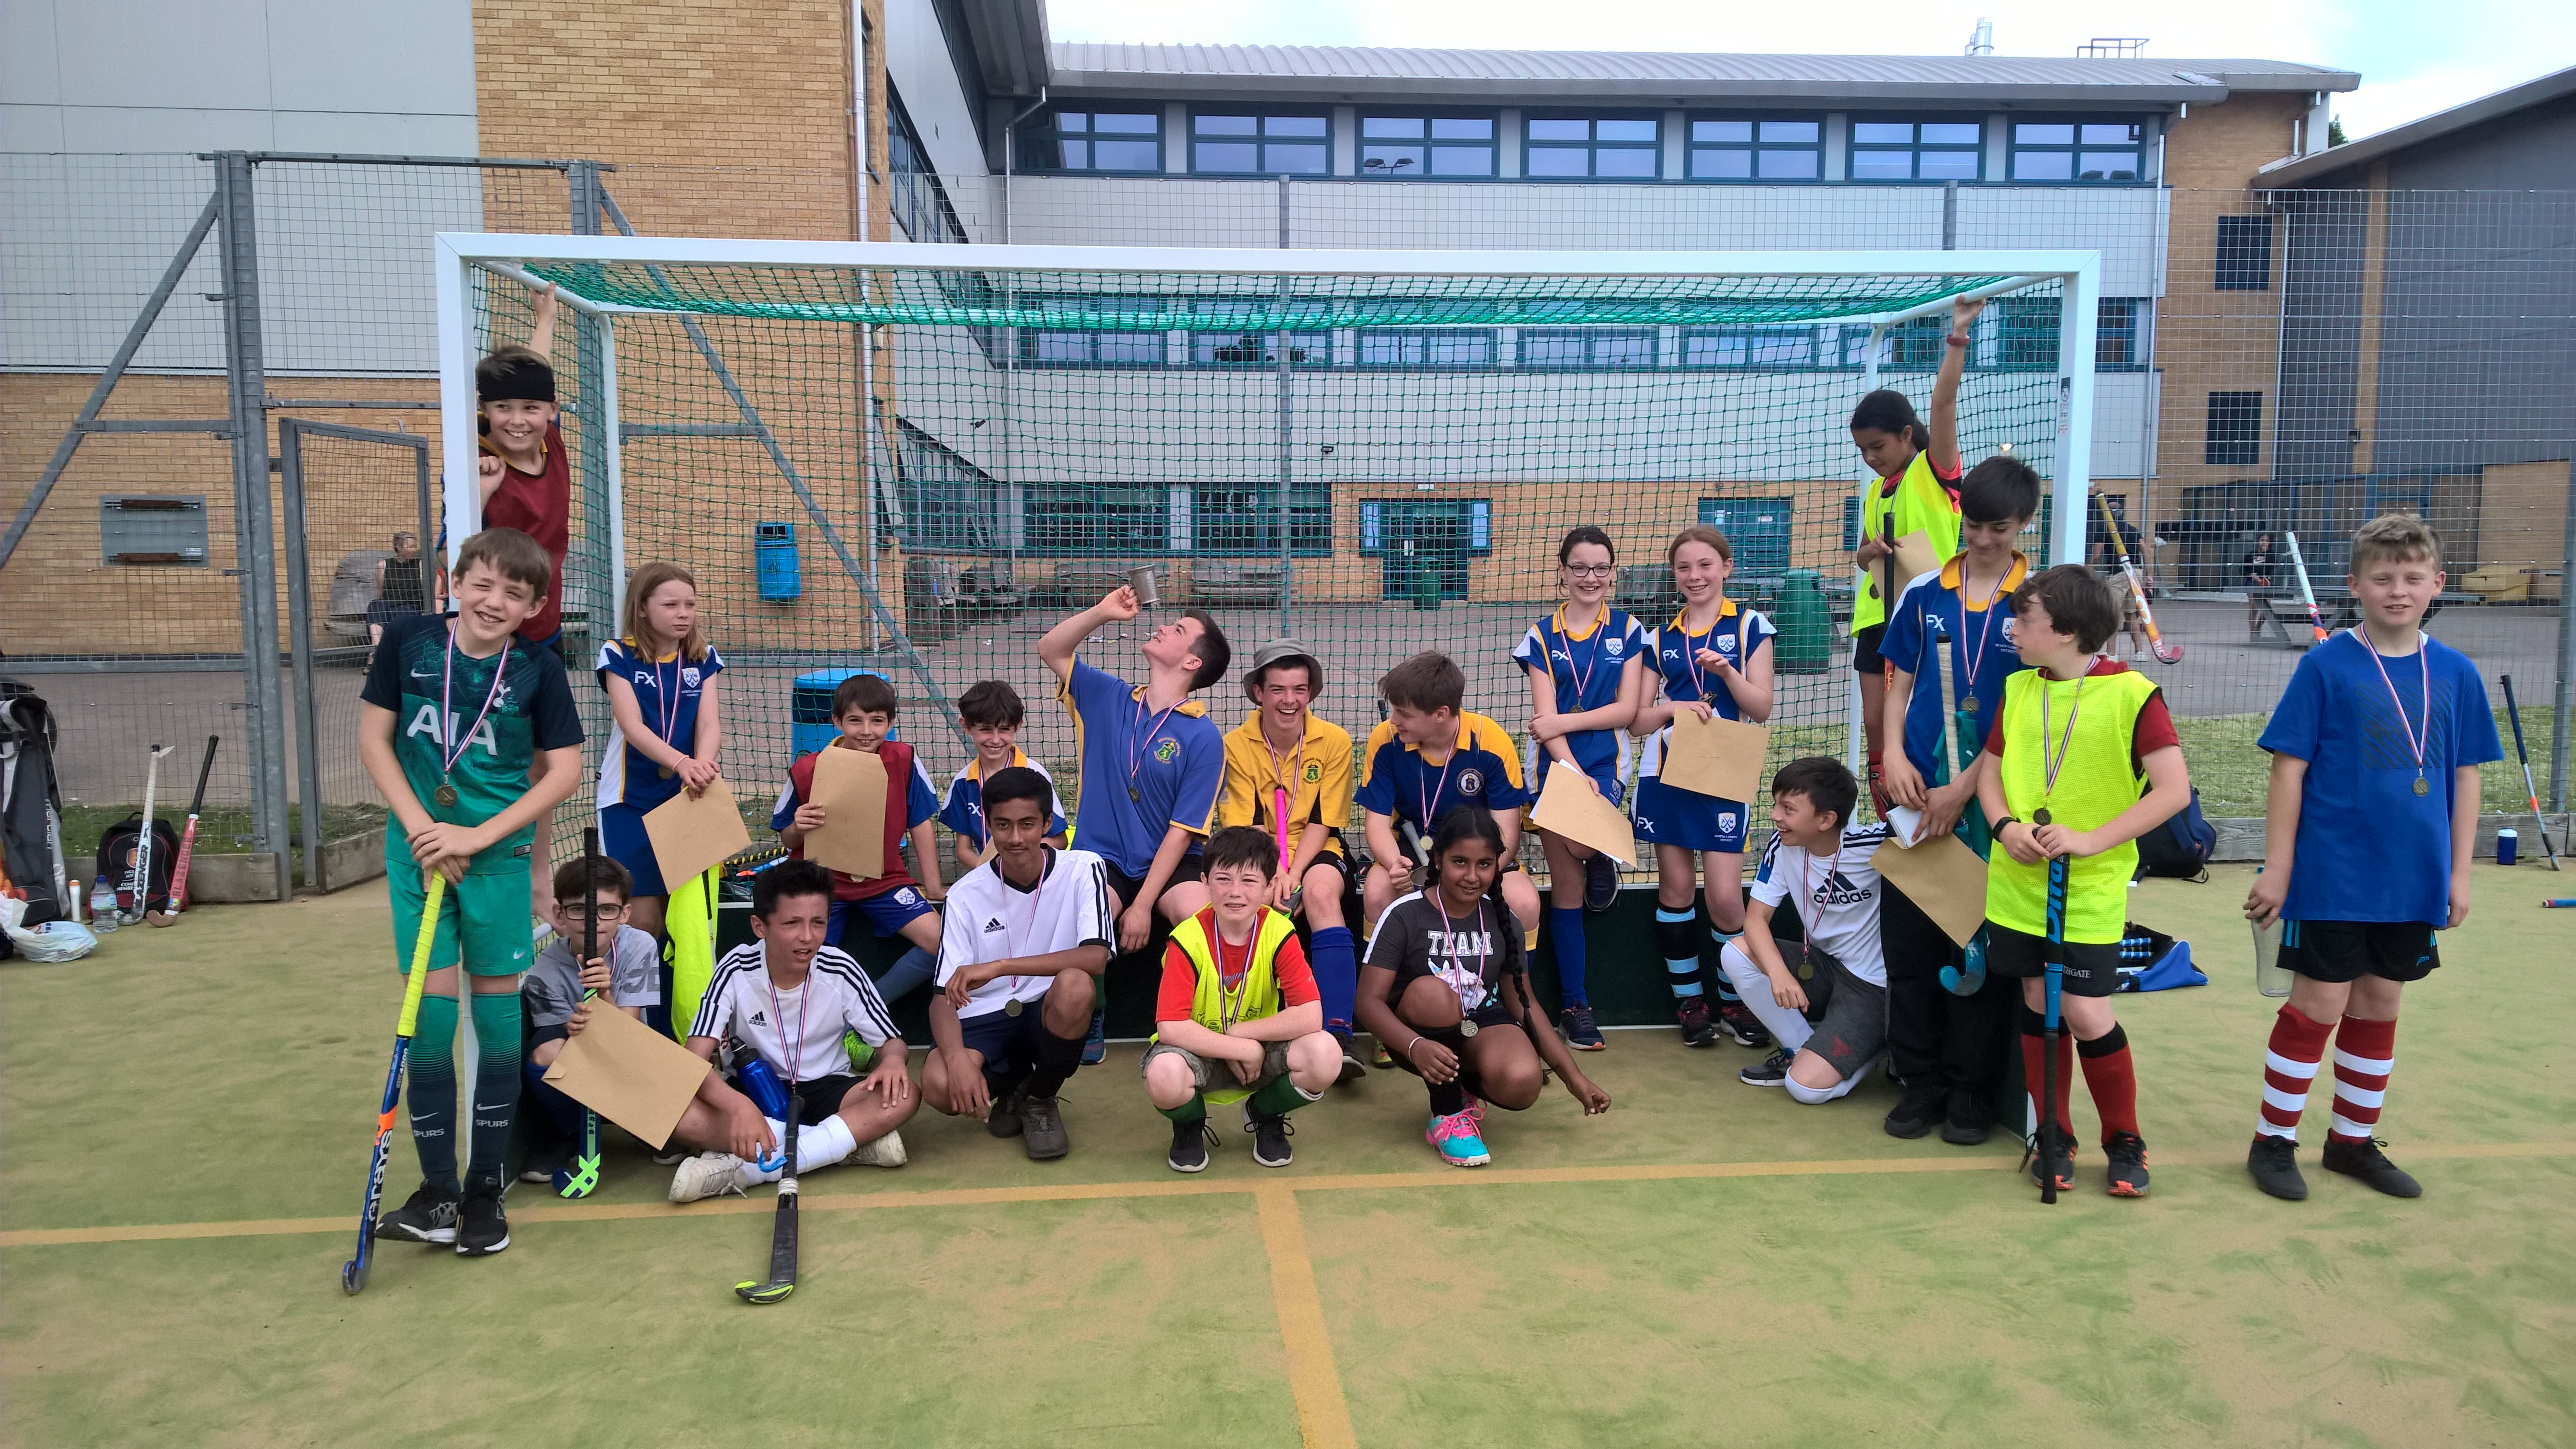 North London Hockey sessions start again Sunday 27th September at a new venue